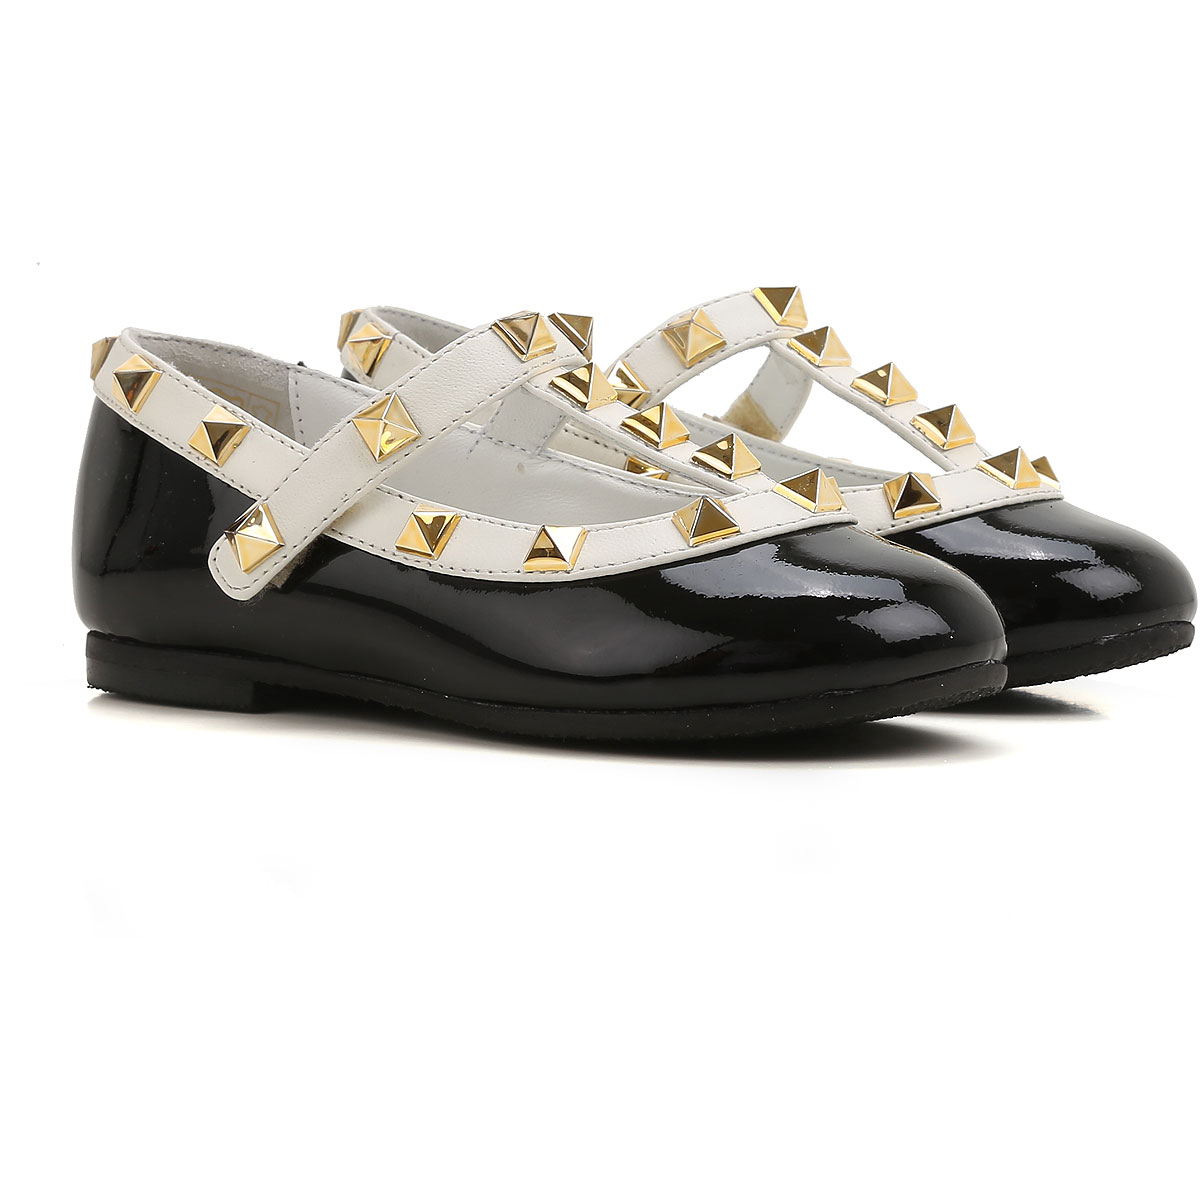 Image of Prosperine Kids Shoes for Girls, Black, Patent Leather, 2017, 24 25 26 27 28 30 31 32 33 34 35